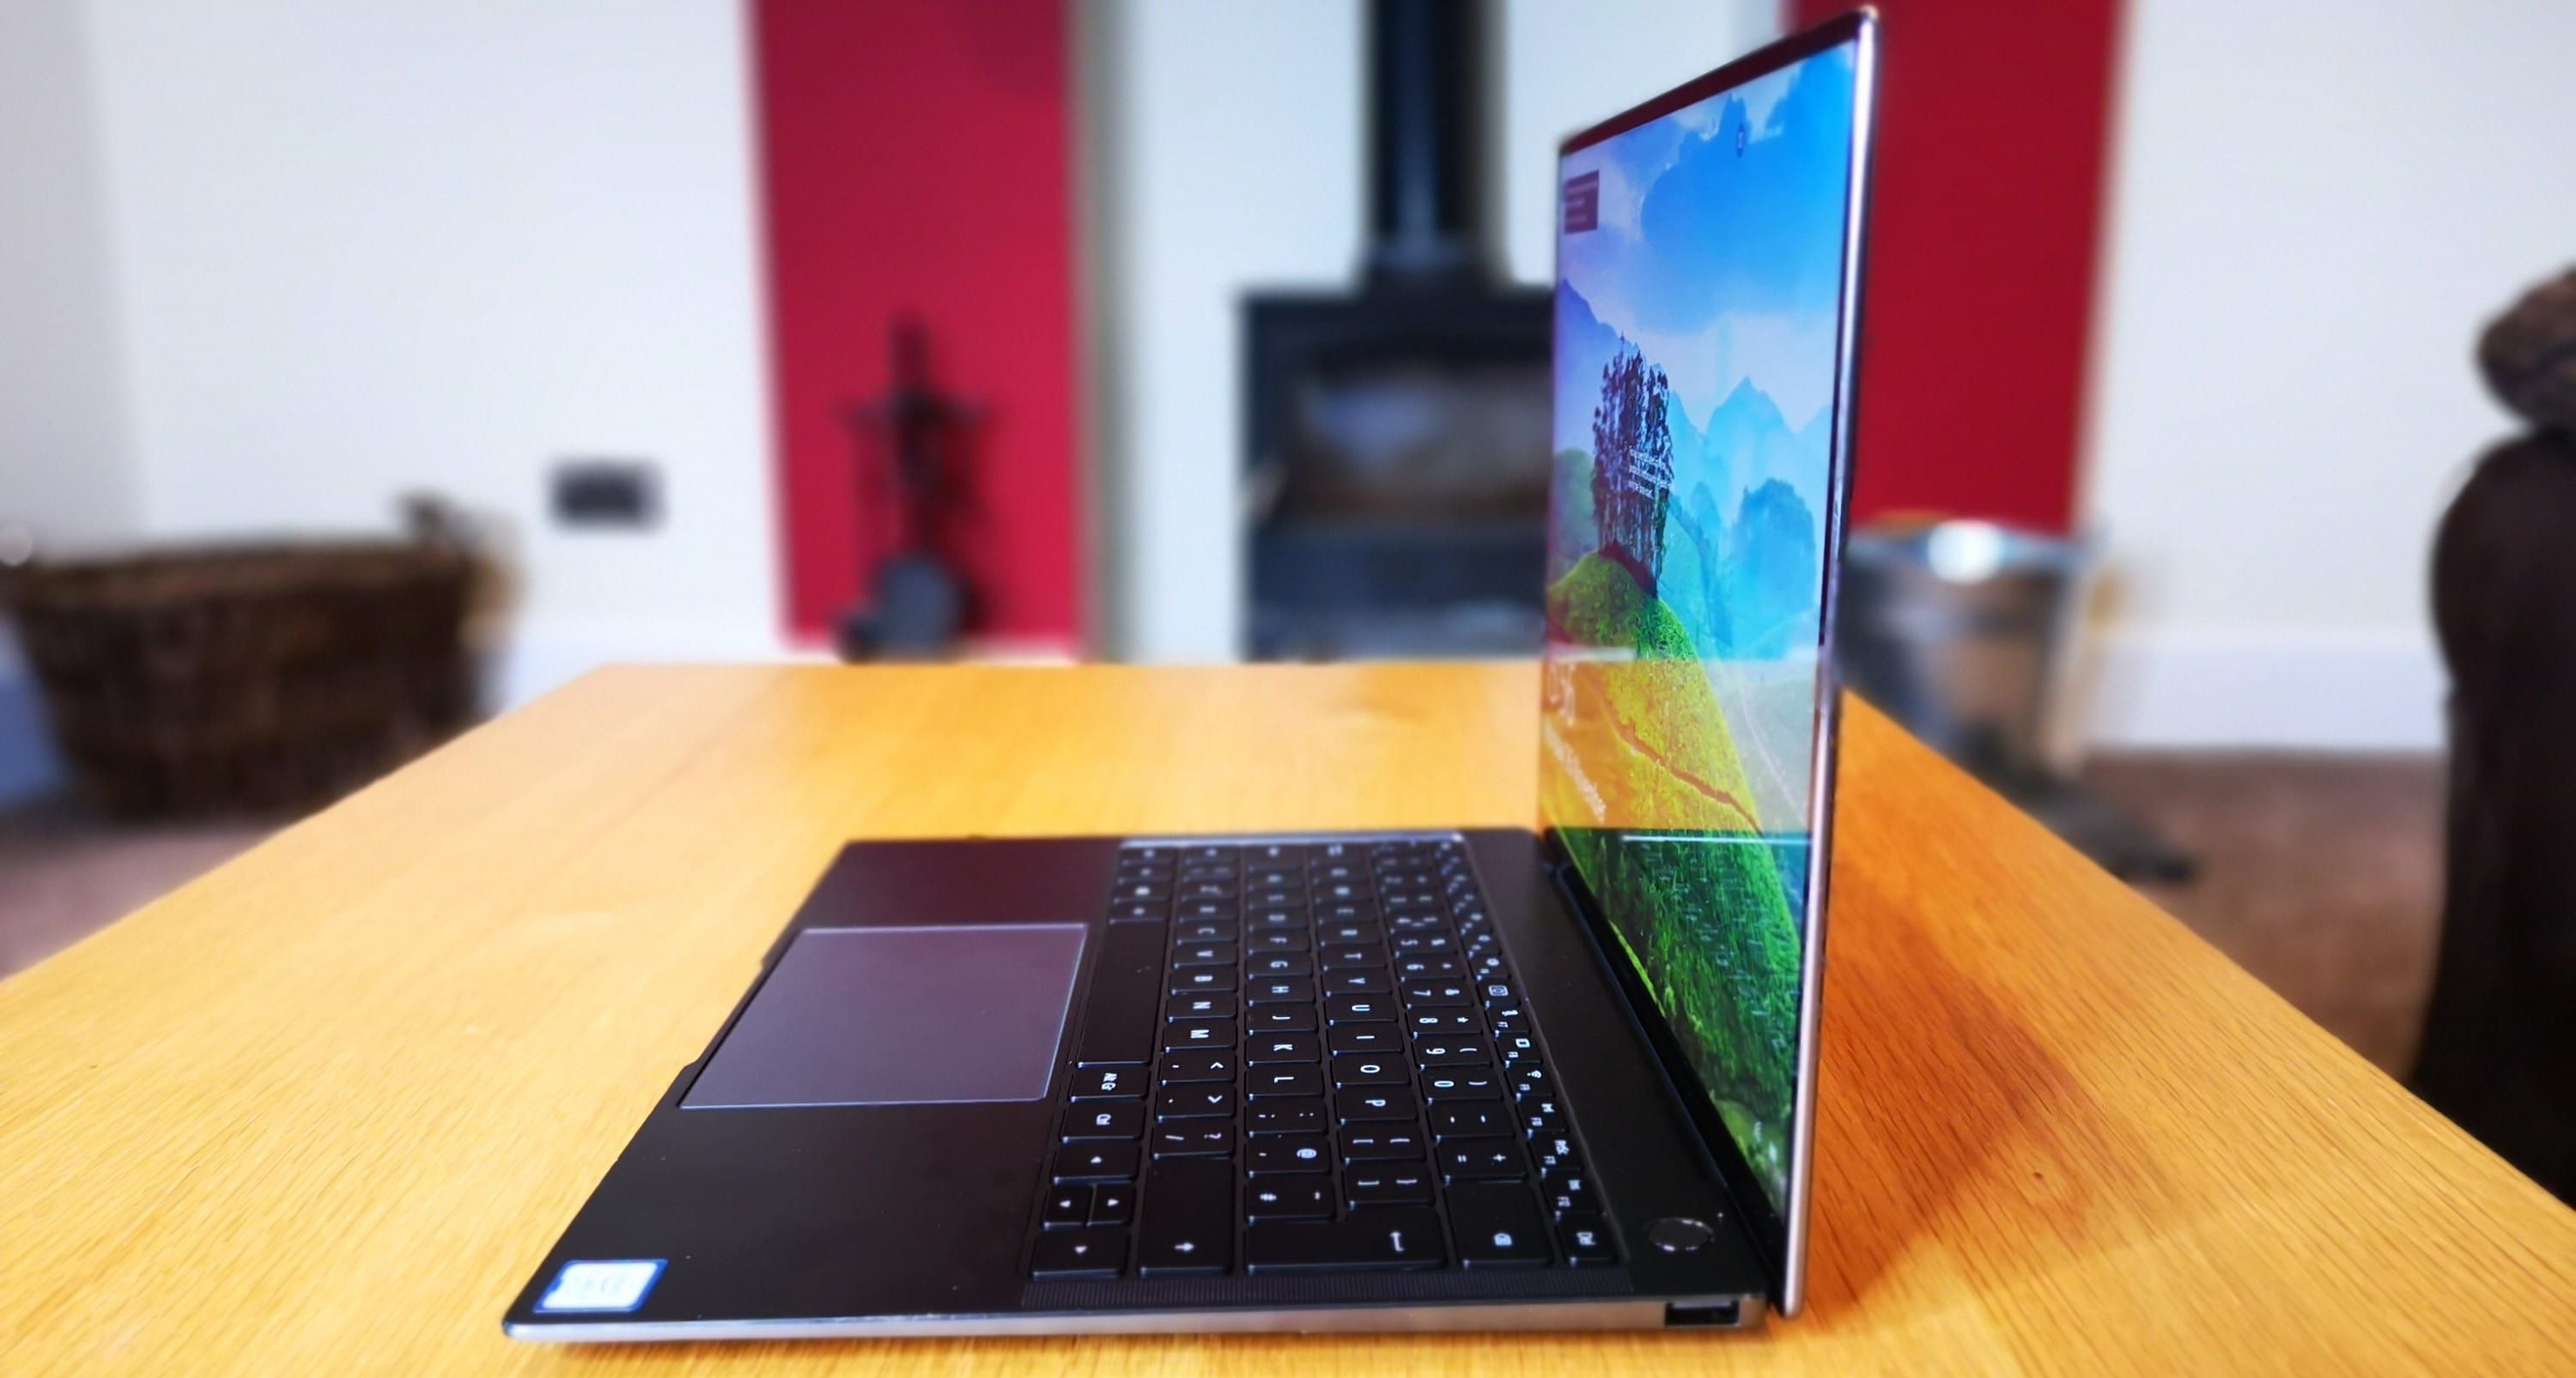 Huawei Matebook X Pro Review - The best premium ultrabook on the